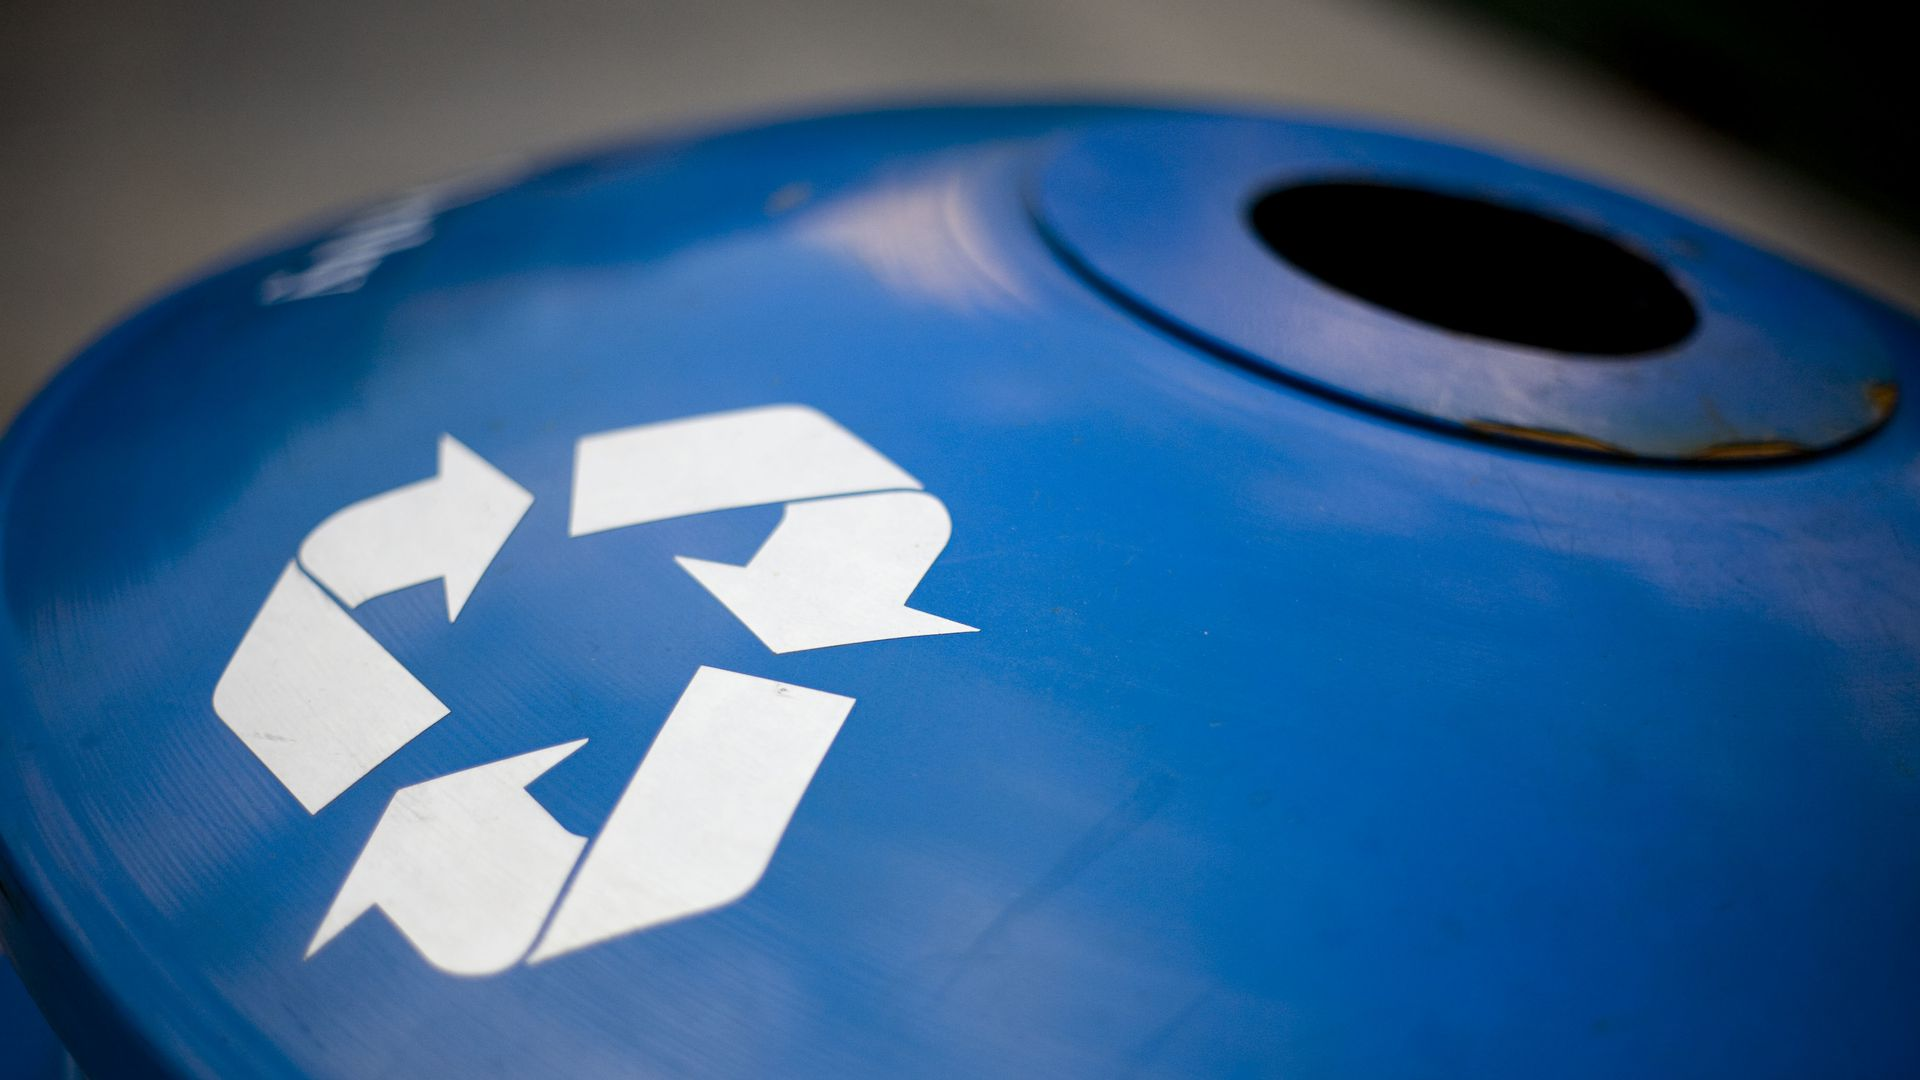 Image of recycling logo.